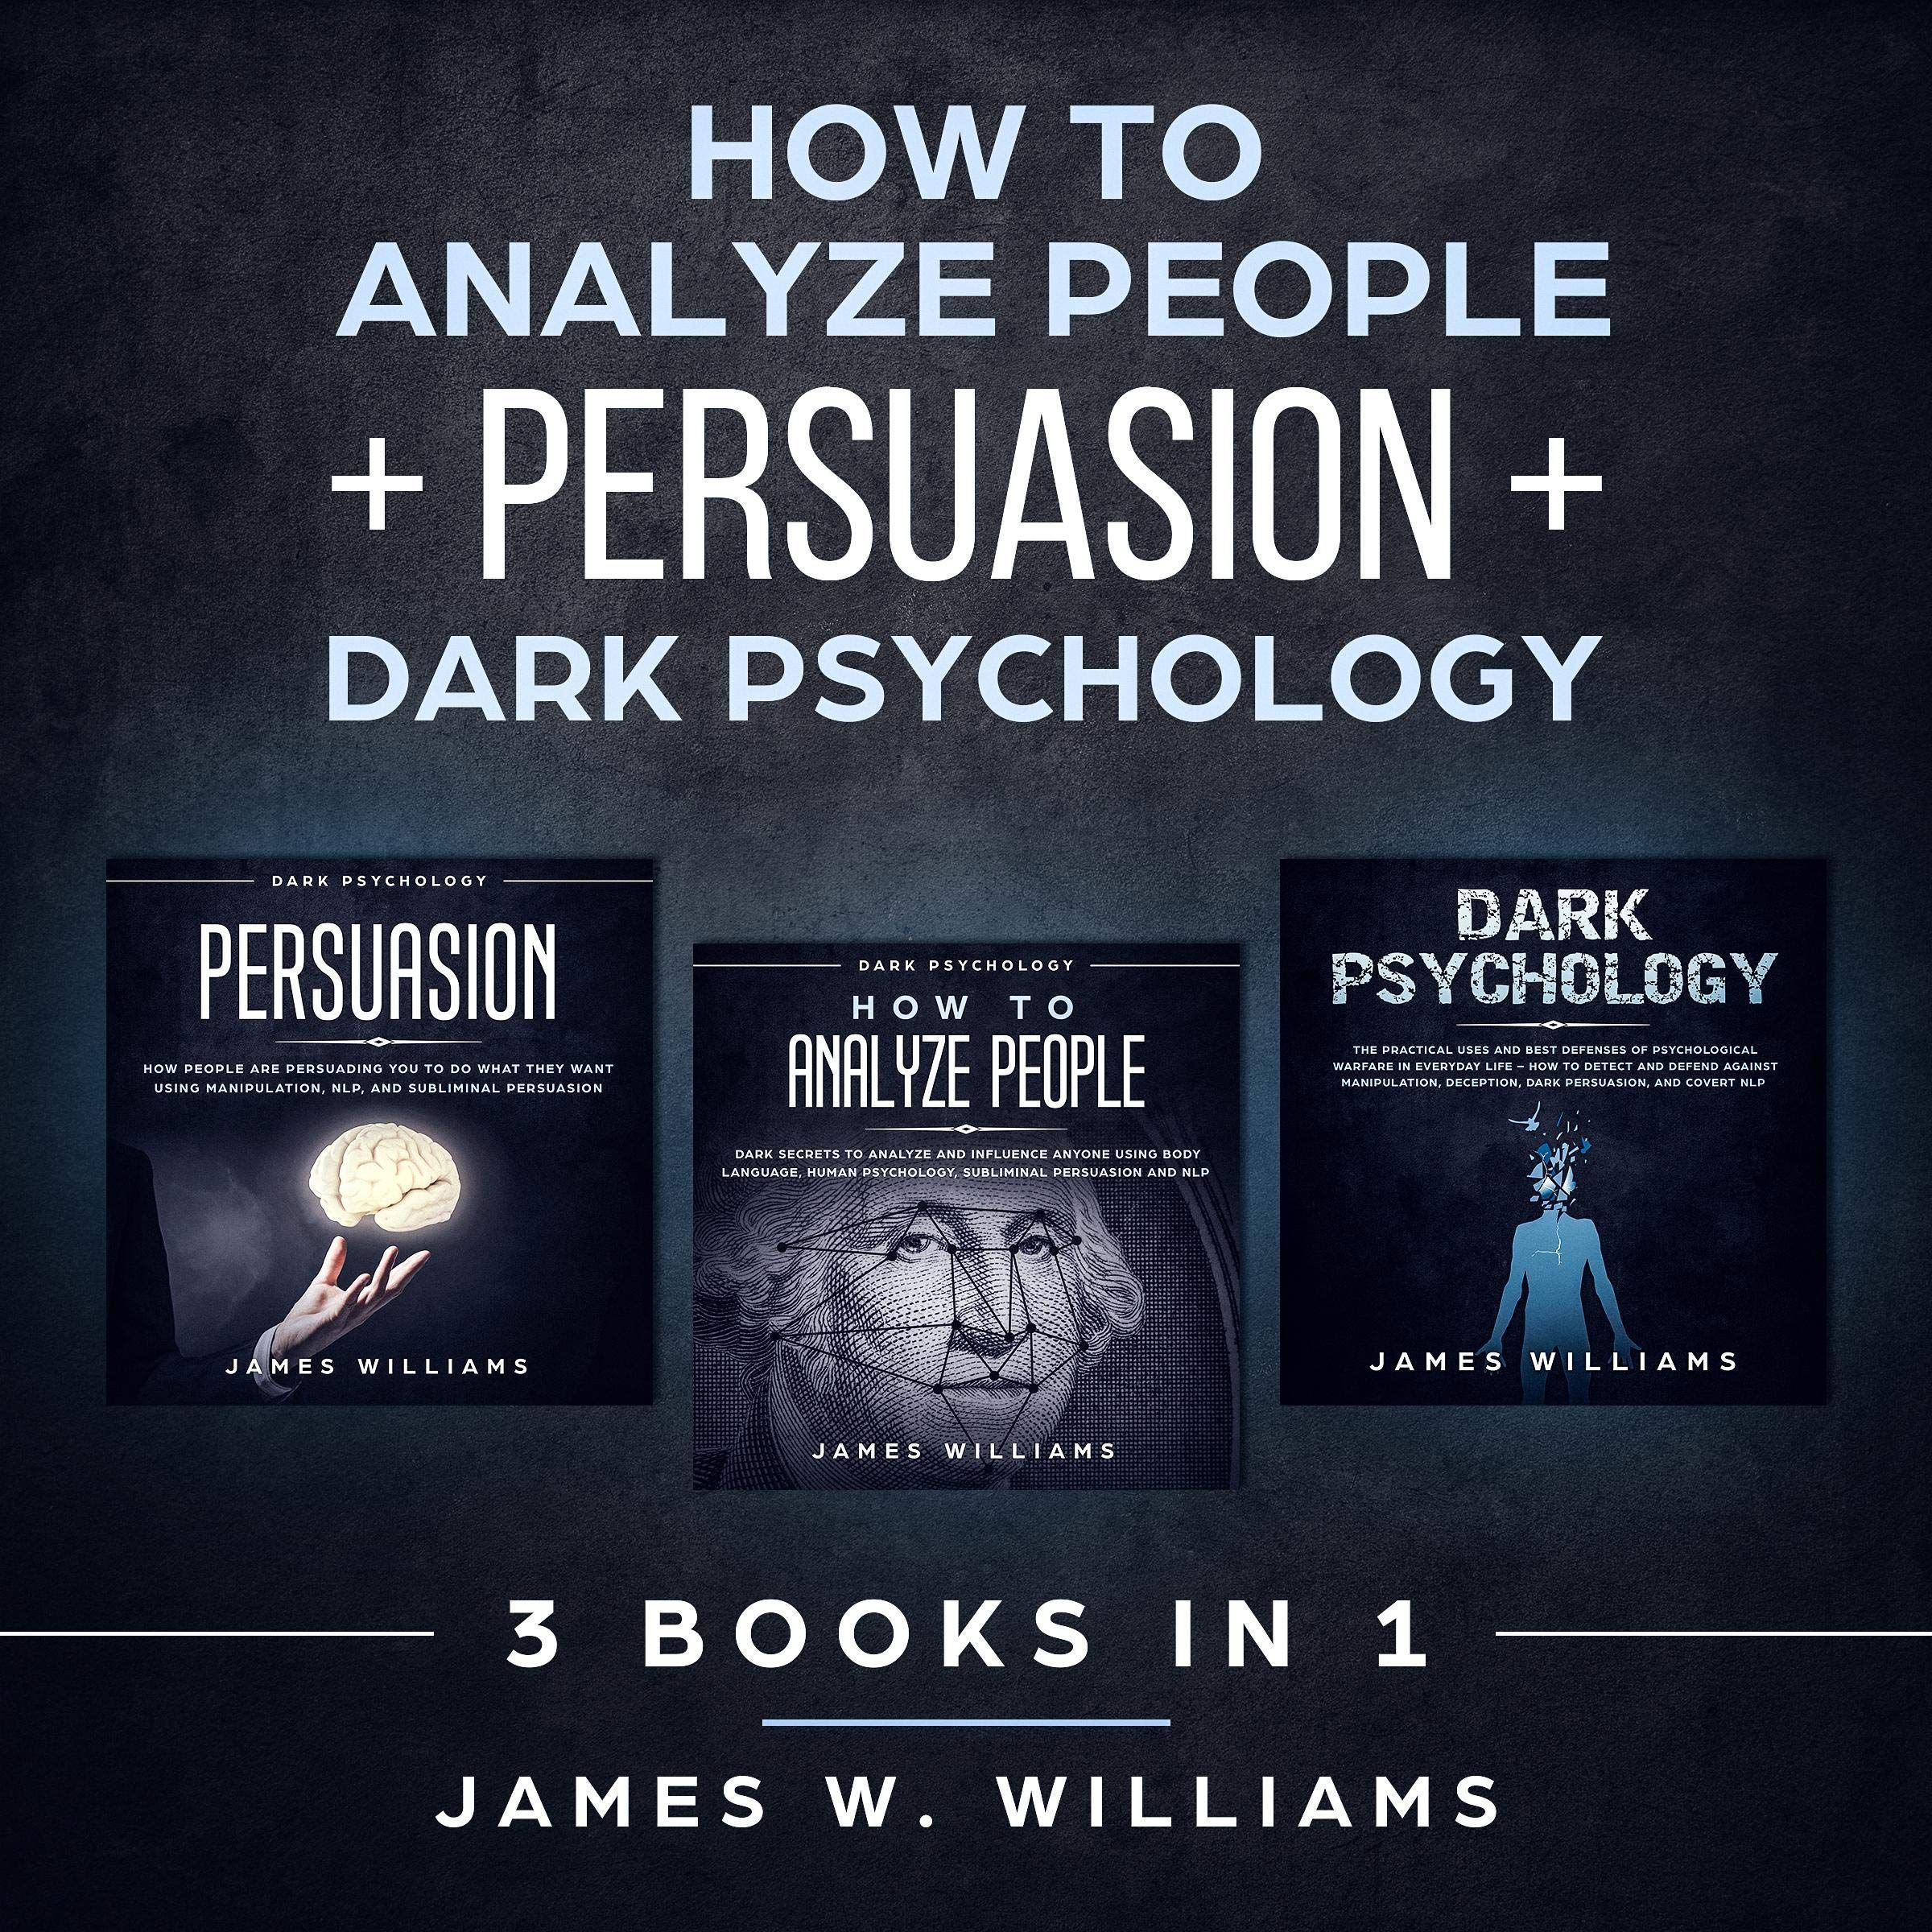 Pdf Epub Free Download How To Analyze People Persuasion And